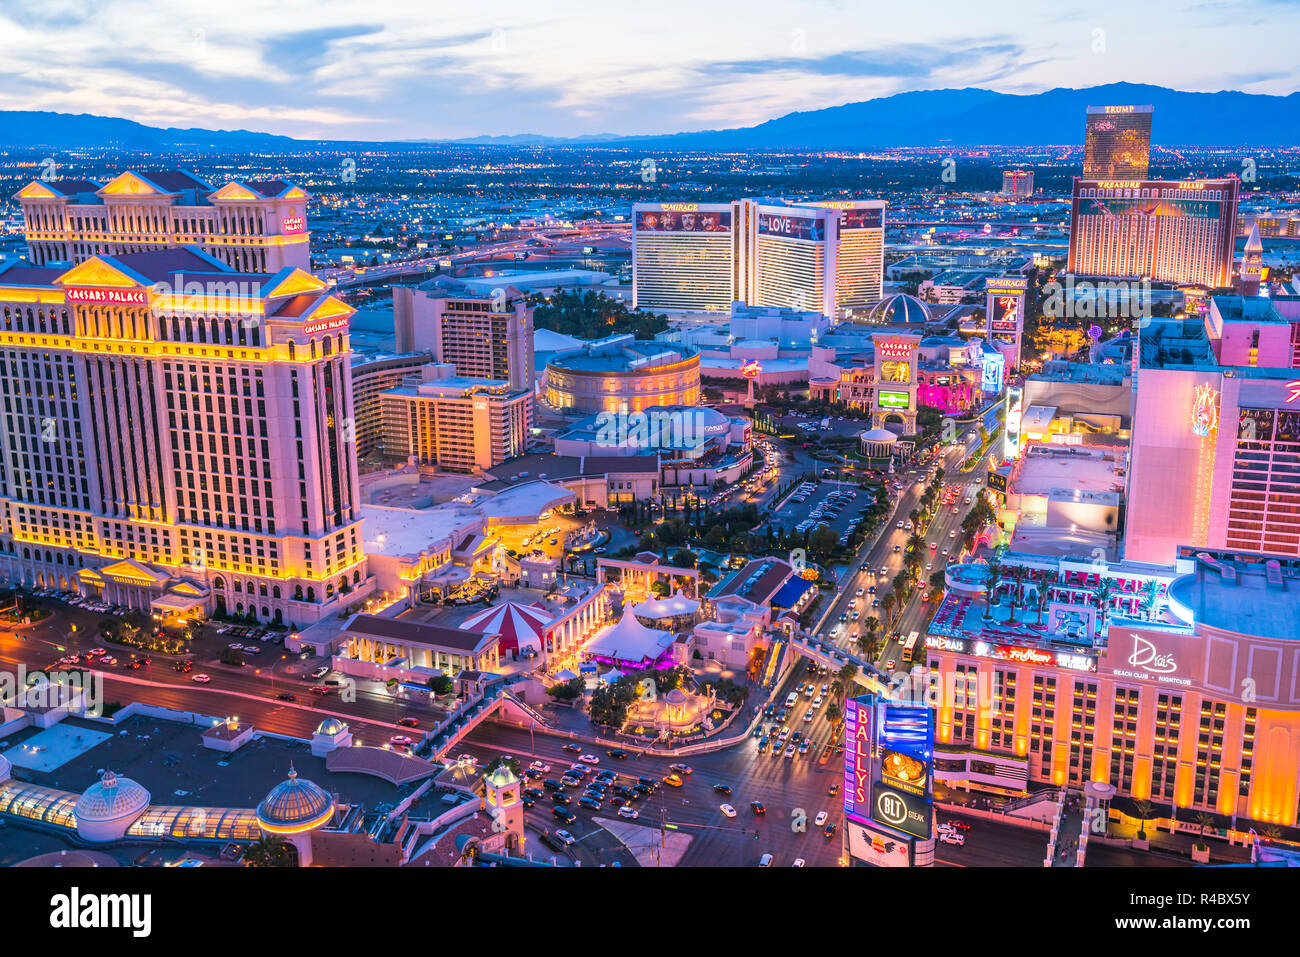 las vegas,nevada,usa. 05-30-17: beautiful las vegas arial view at night. - Stock Image